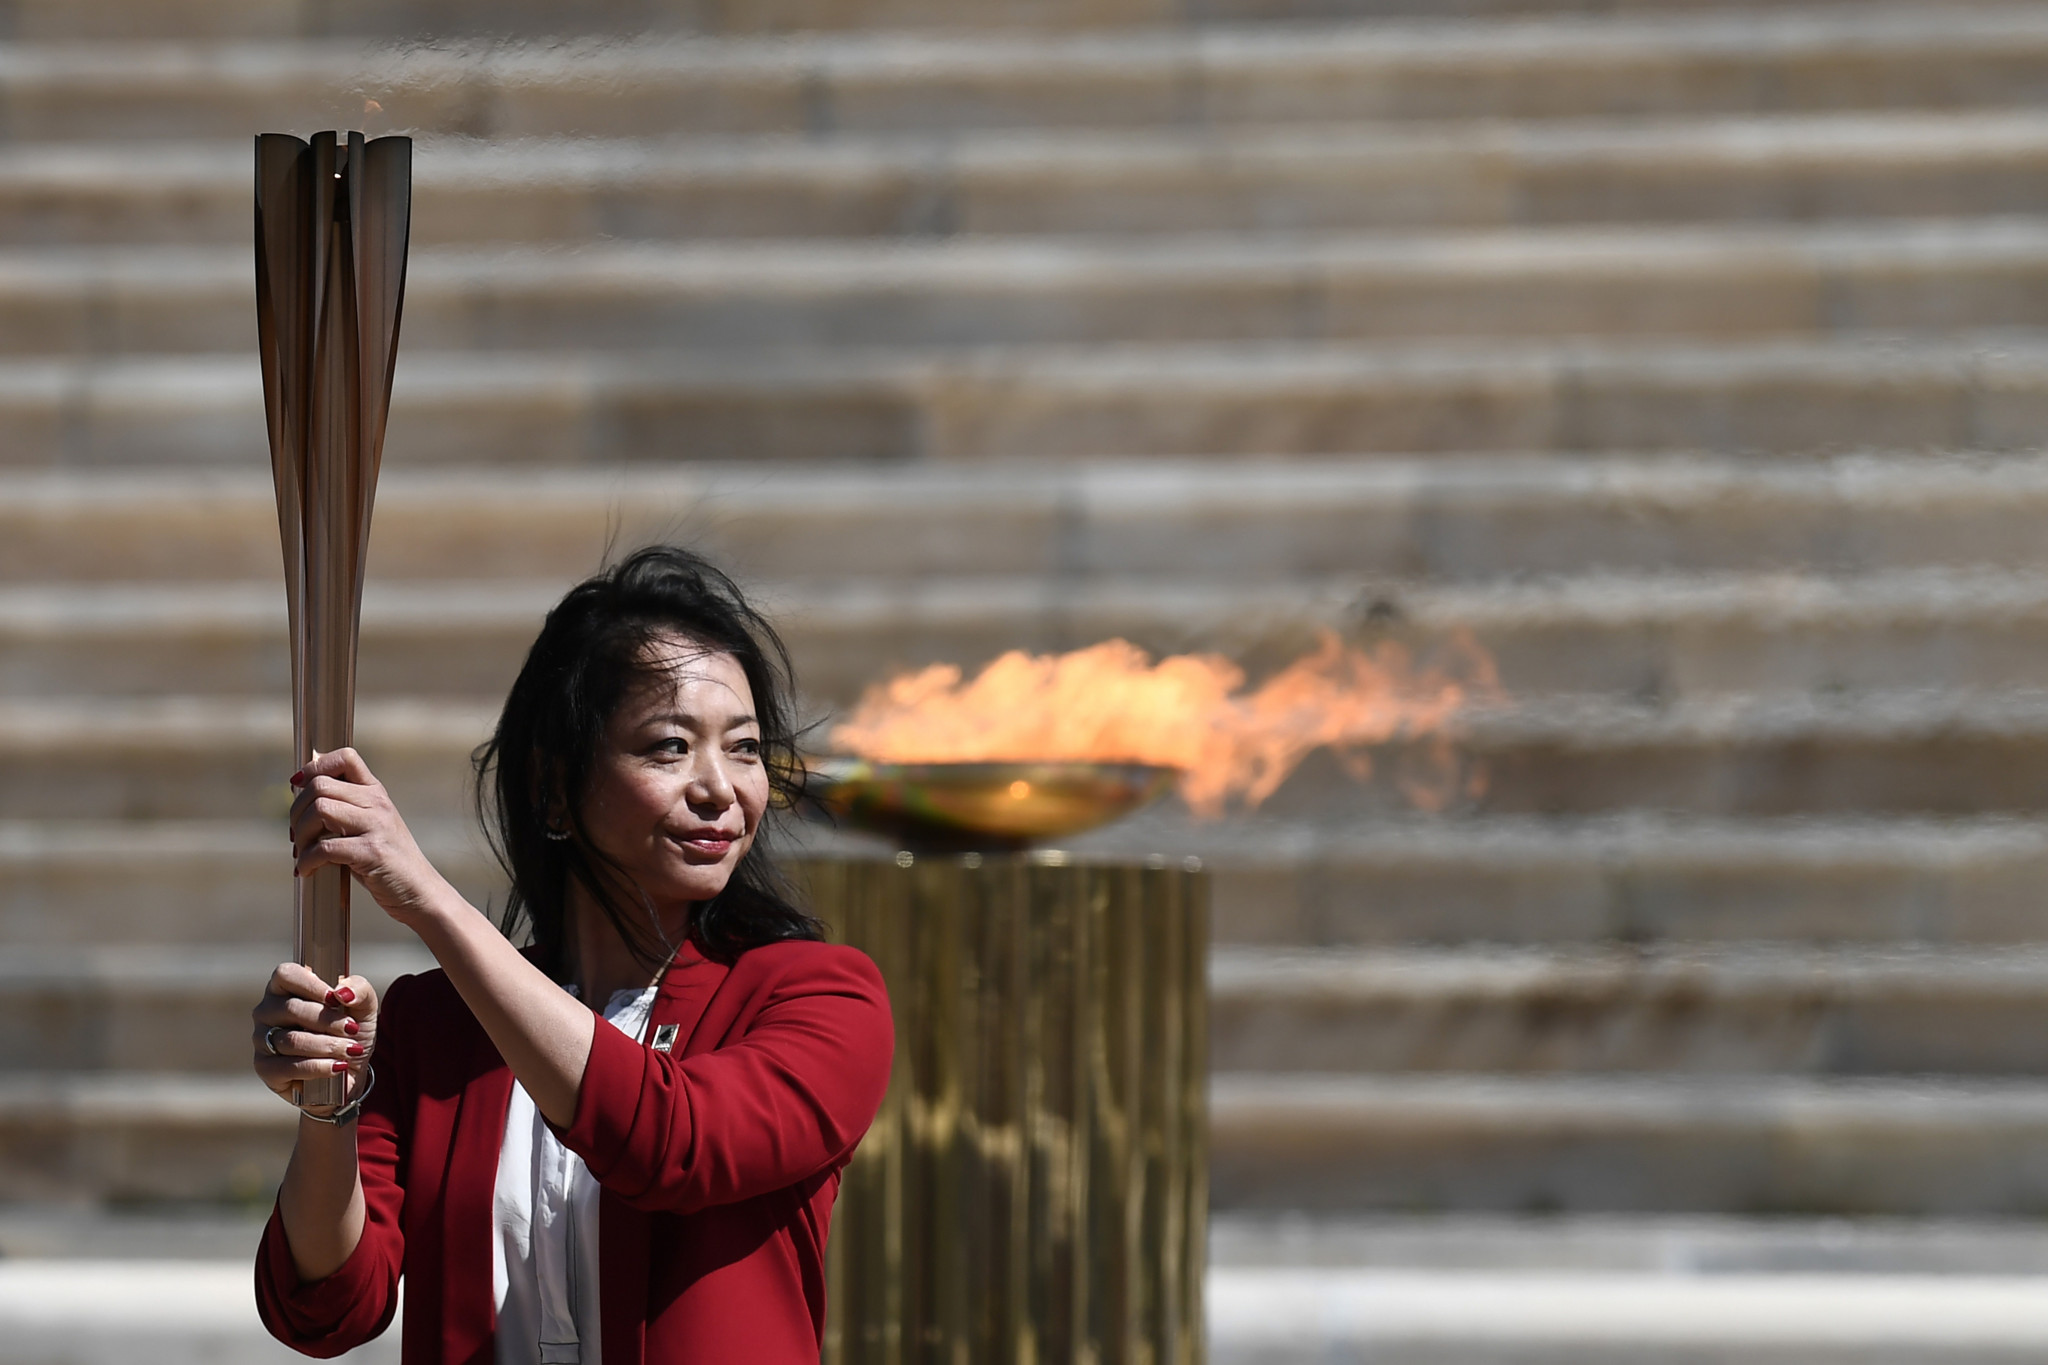 Naoko Imoto received the Olympic Flame on Tokyo 2020's behalf ©Getty Images